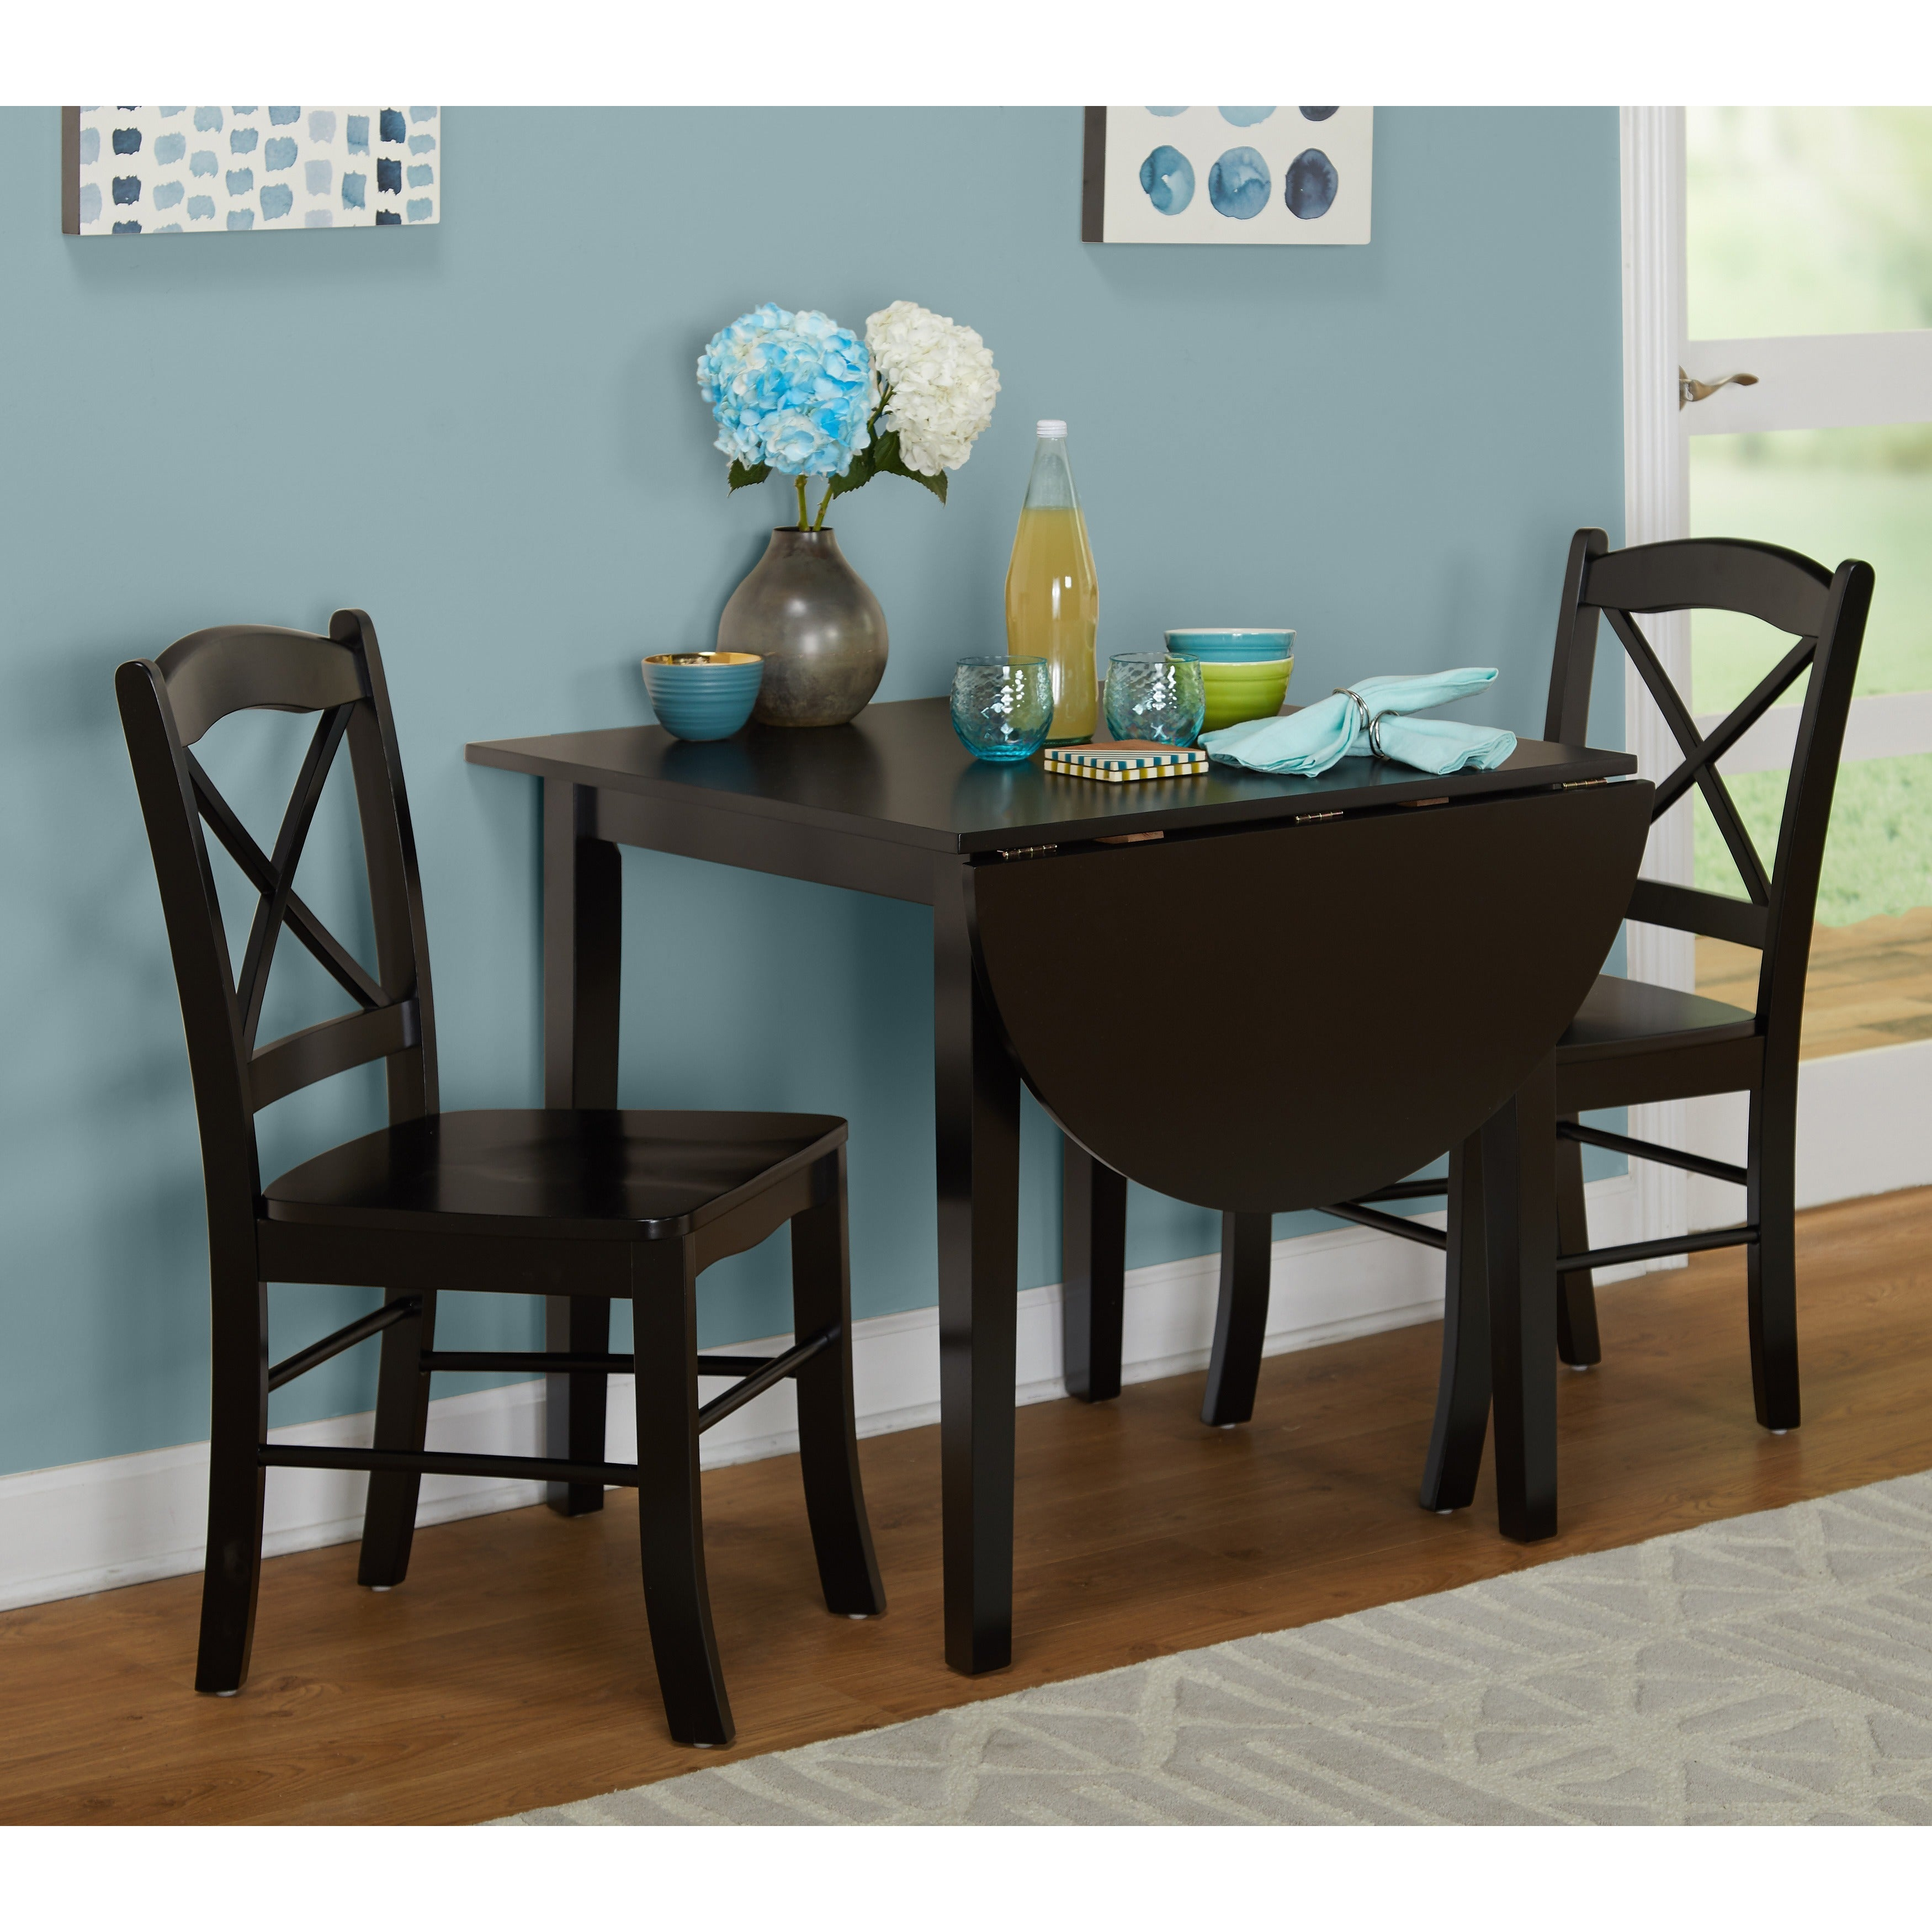 Shop Simple Living Black 3-piece Country Cottage Dining Set - Free ...